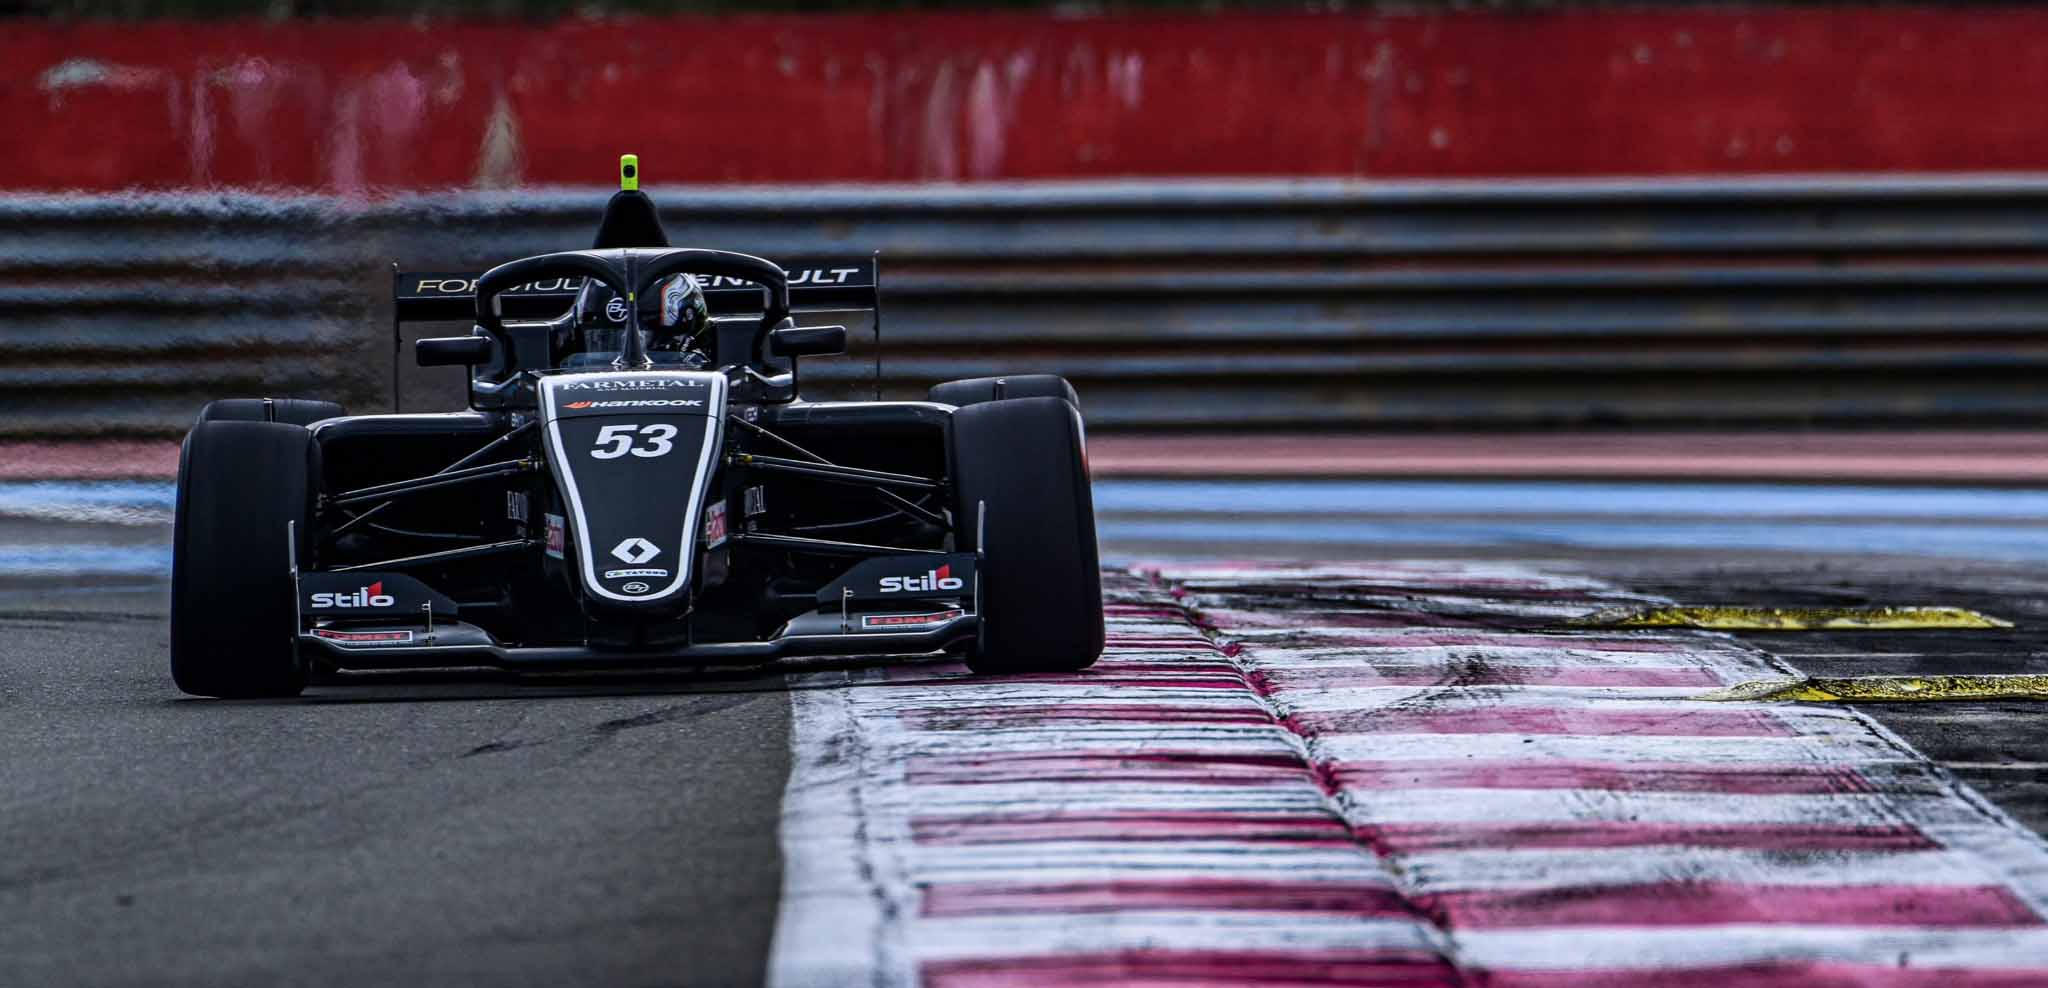 Le Castellet - Qualifica 1<br />Colombo beffa Martins